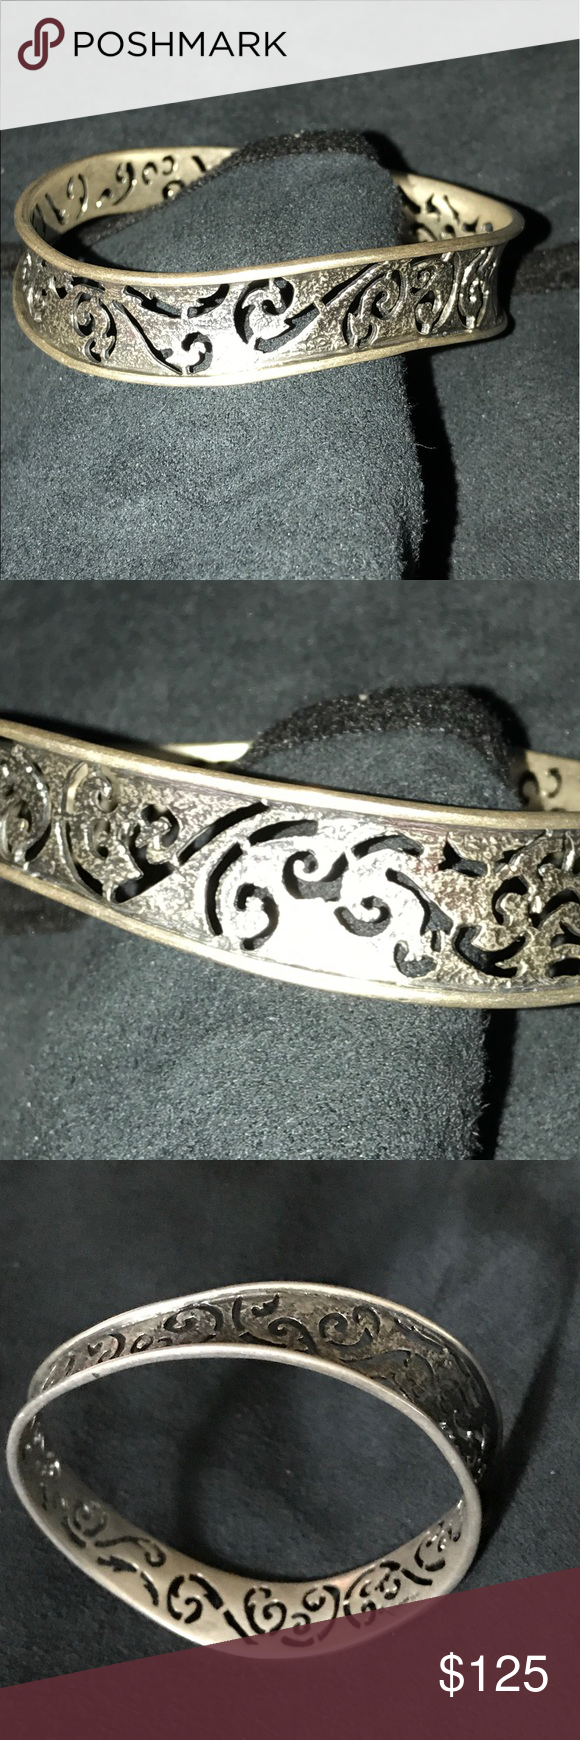 Silpada Sterling Silver Bracelet Silpada Sterling silver bracelet with mat finish inner oxidized with cut out designs trimmed in a polished silver.  Has a swirl round design that makes everyone say, WOW!!! Silpada Jewelry Bracelets